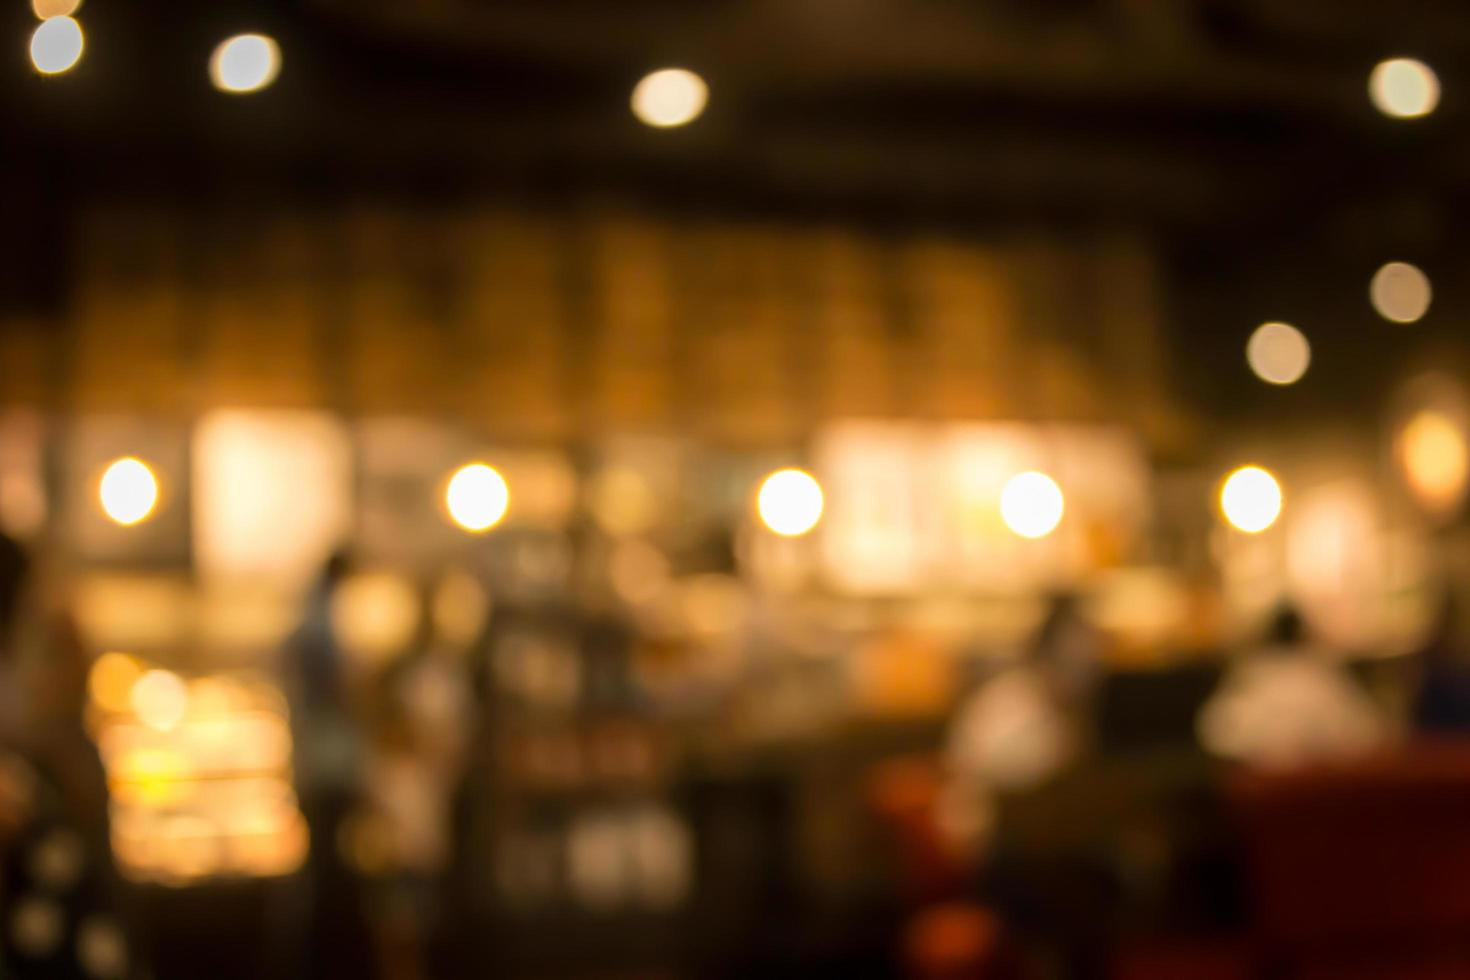 Blurred cafe background photo